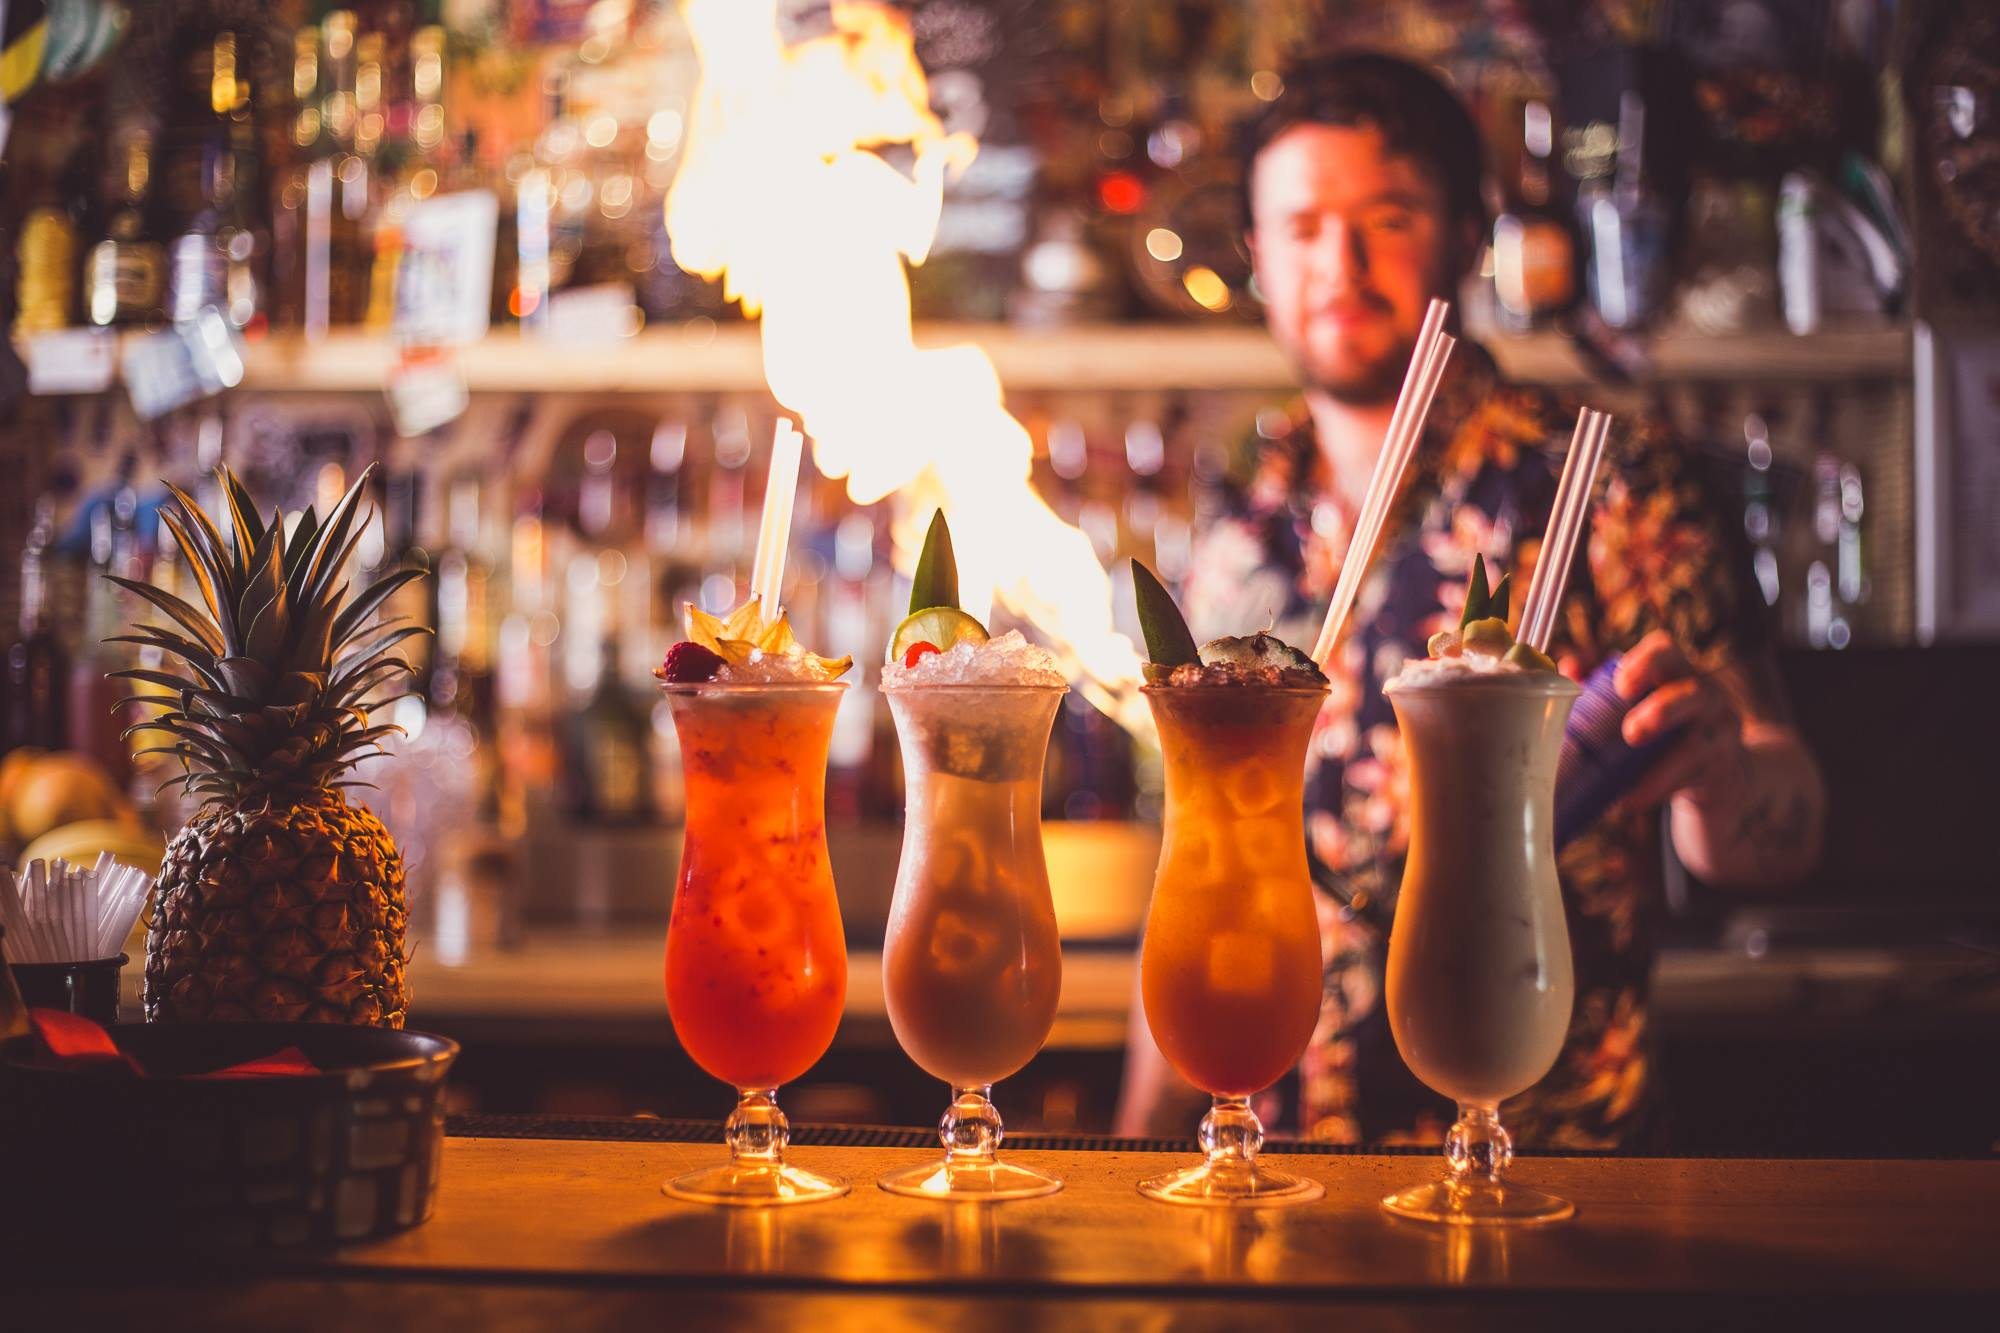 Party Universities, with an image of four cocktails on a table, with a bartender and flames in the background